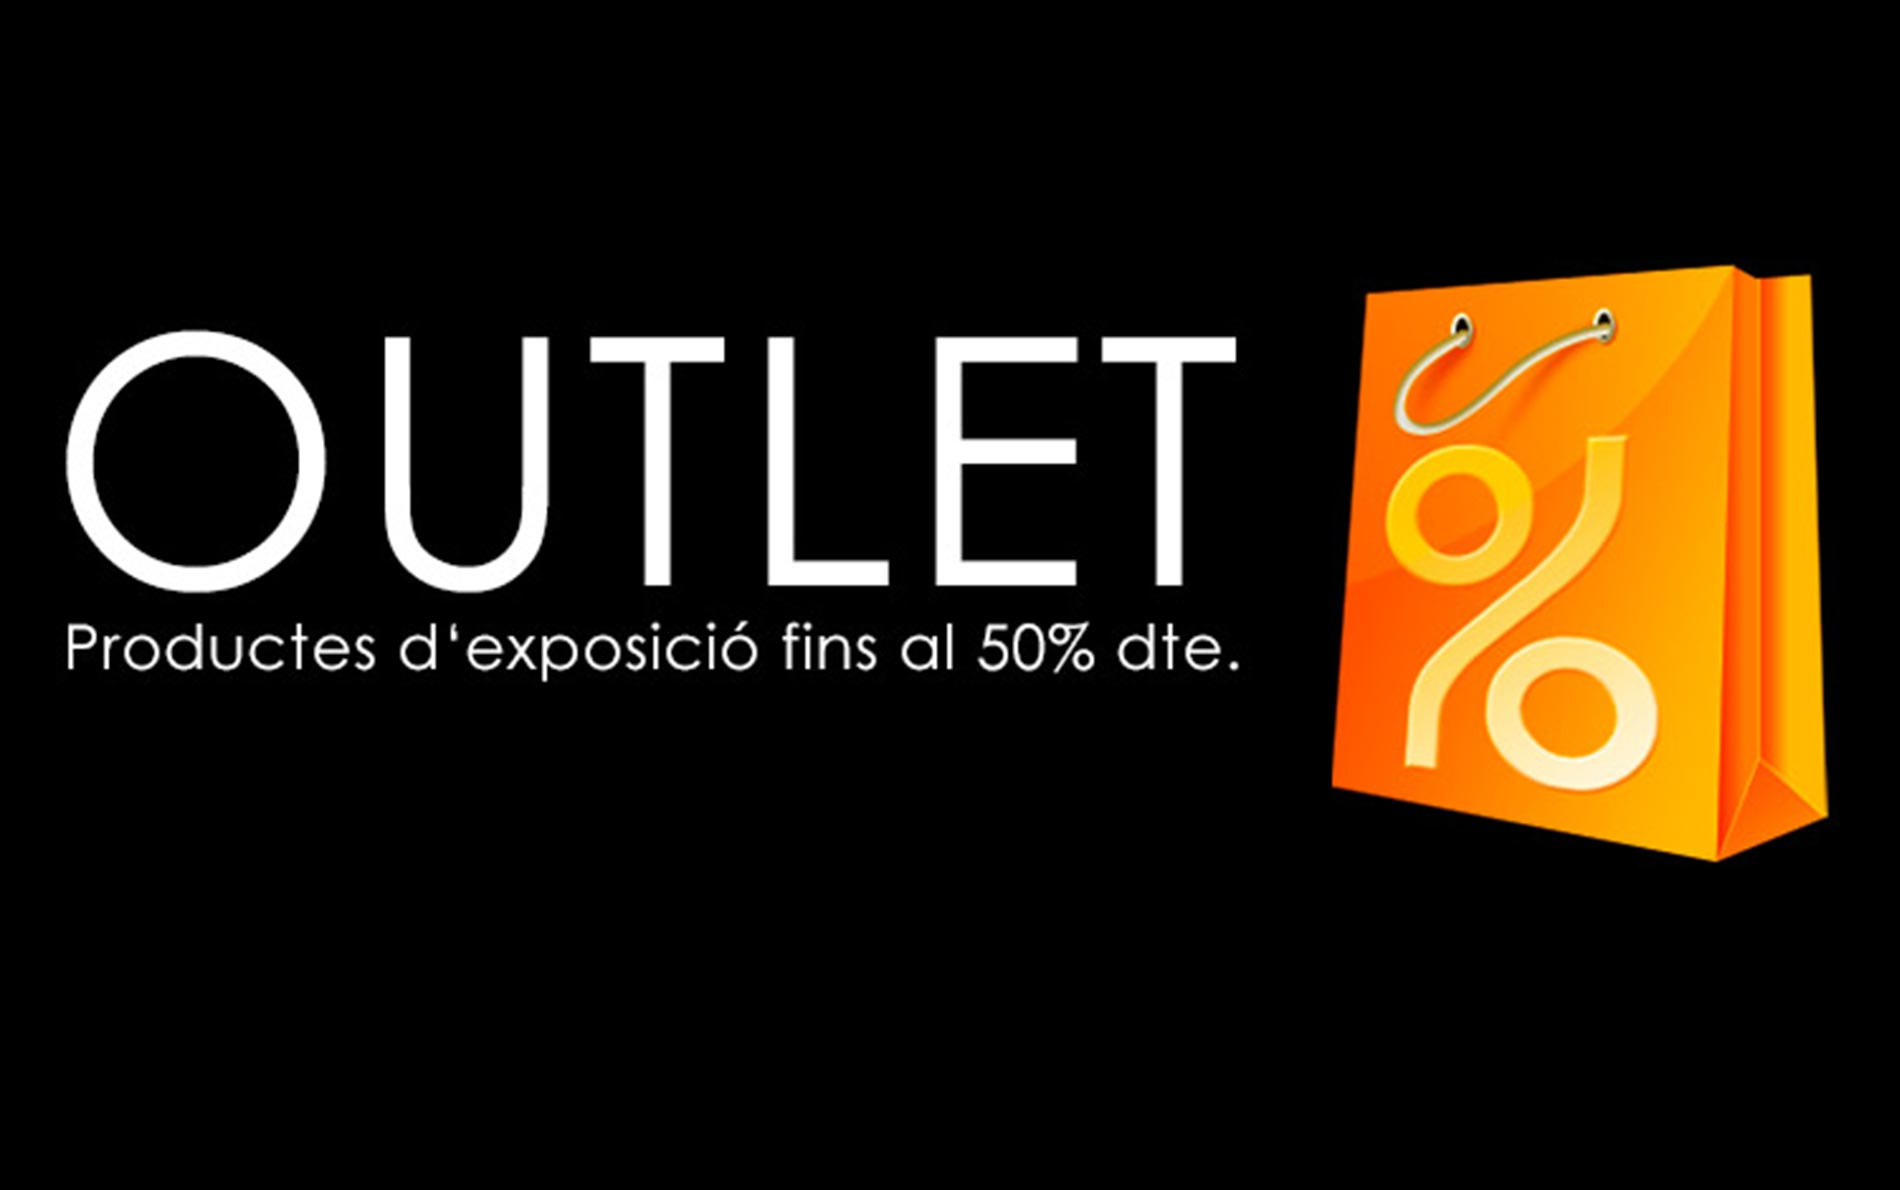 Outlet mobles disseny